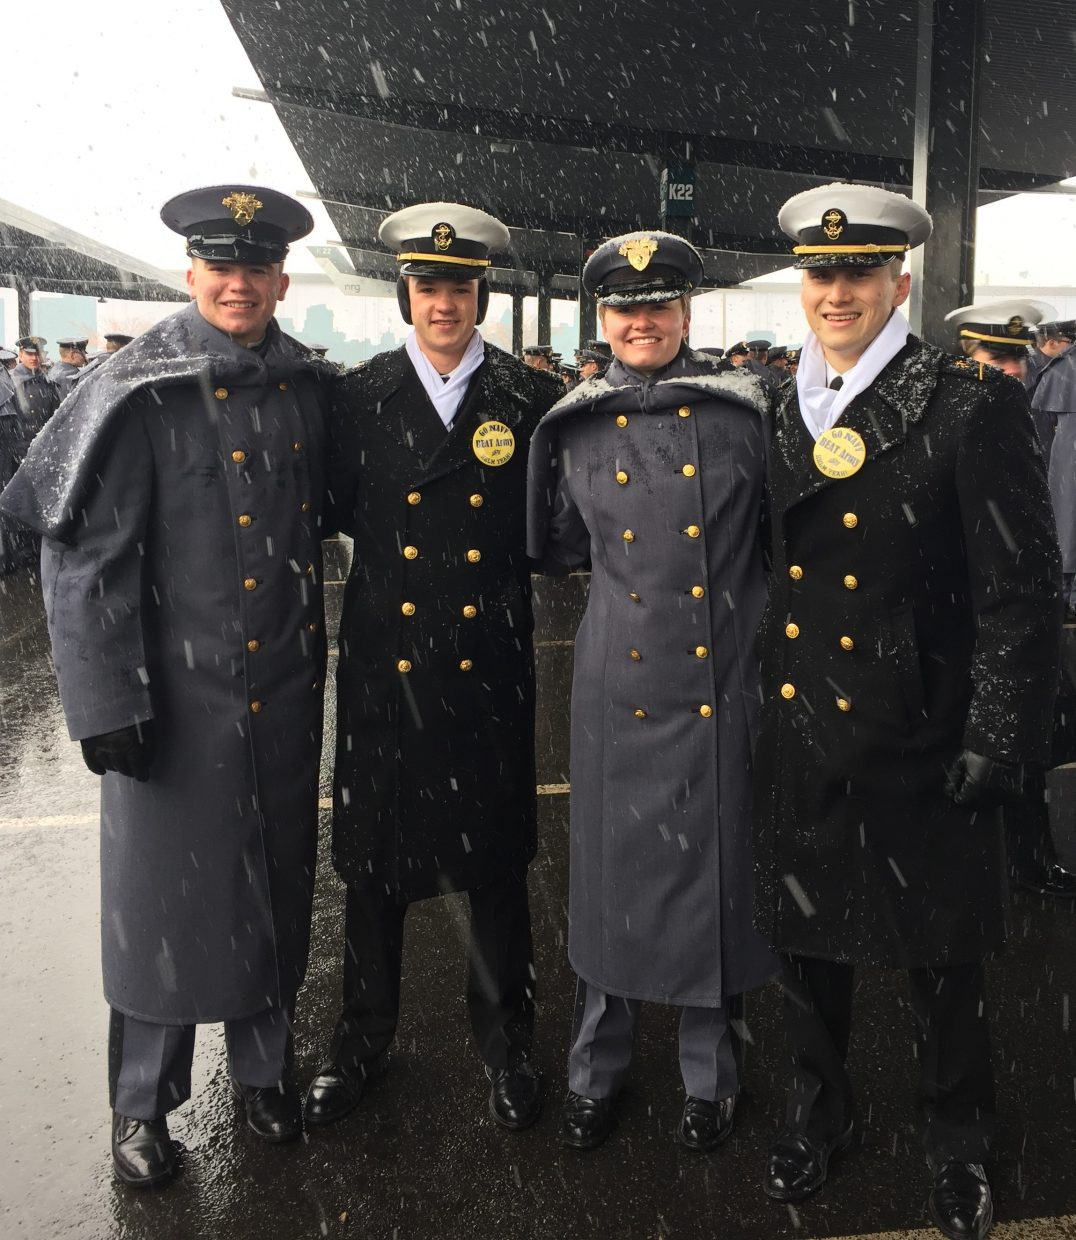 My son Charlie, who is a plebe at West Point, sent this picture that was taken before the game Saturday. It shows the four graduates of Steamboat Springs High School who are currently attending service academies: Cadet Charlie Harrington, Midshipman Grant Janka, Cadet Maddie Ruppel, and Midshipman Connor Frasier. Having four from our small community is noteworthy, and it was special that they could all connect before the game. For the record, Army won 14-13 in a snowy game! Brian Harrington